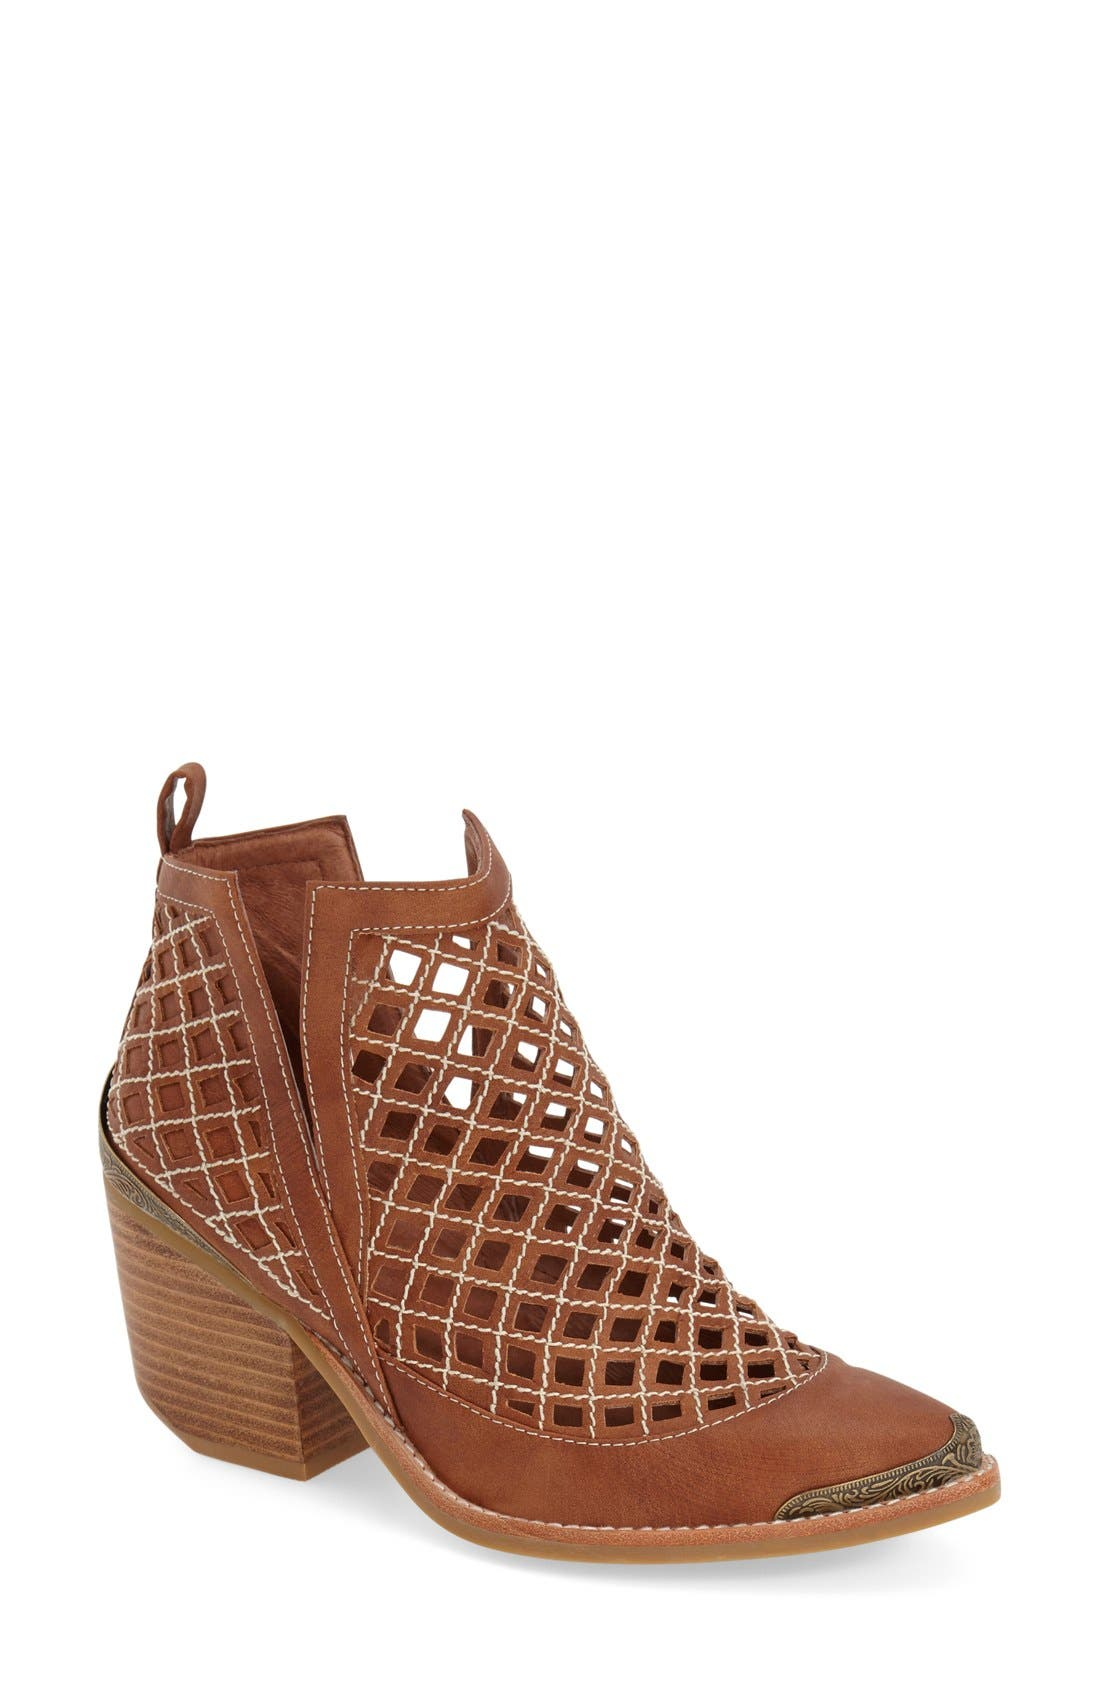 Alternate Image 1 Selected - Jeffrey Campbell 'Cromwell' Cutout Ankle Bootie (Women)